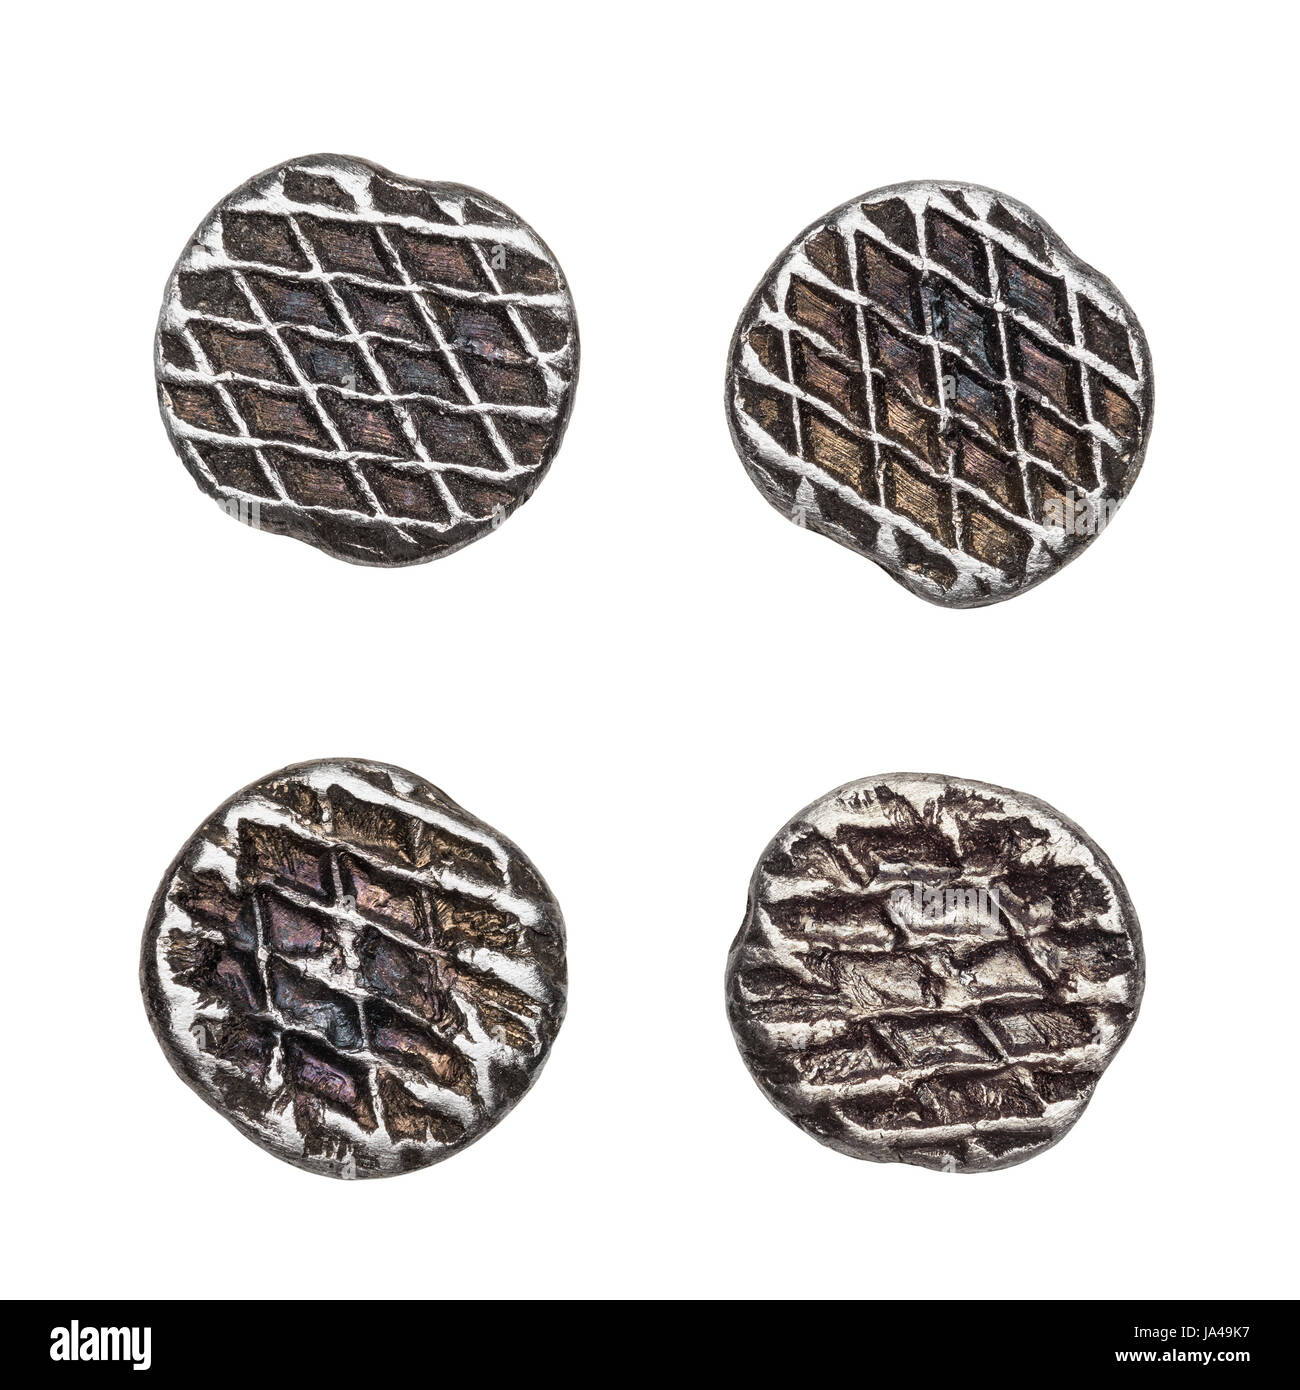 Nail heads made of steel, isolated on white. - Stock Image